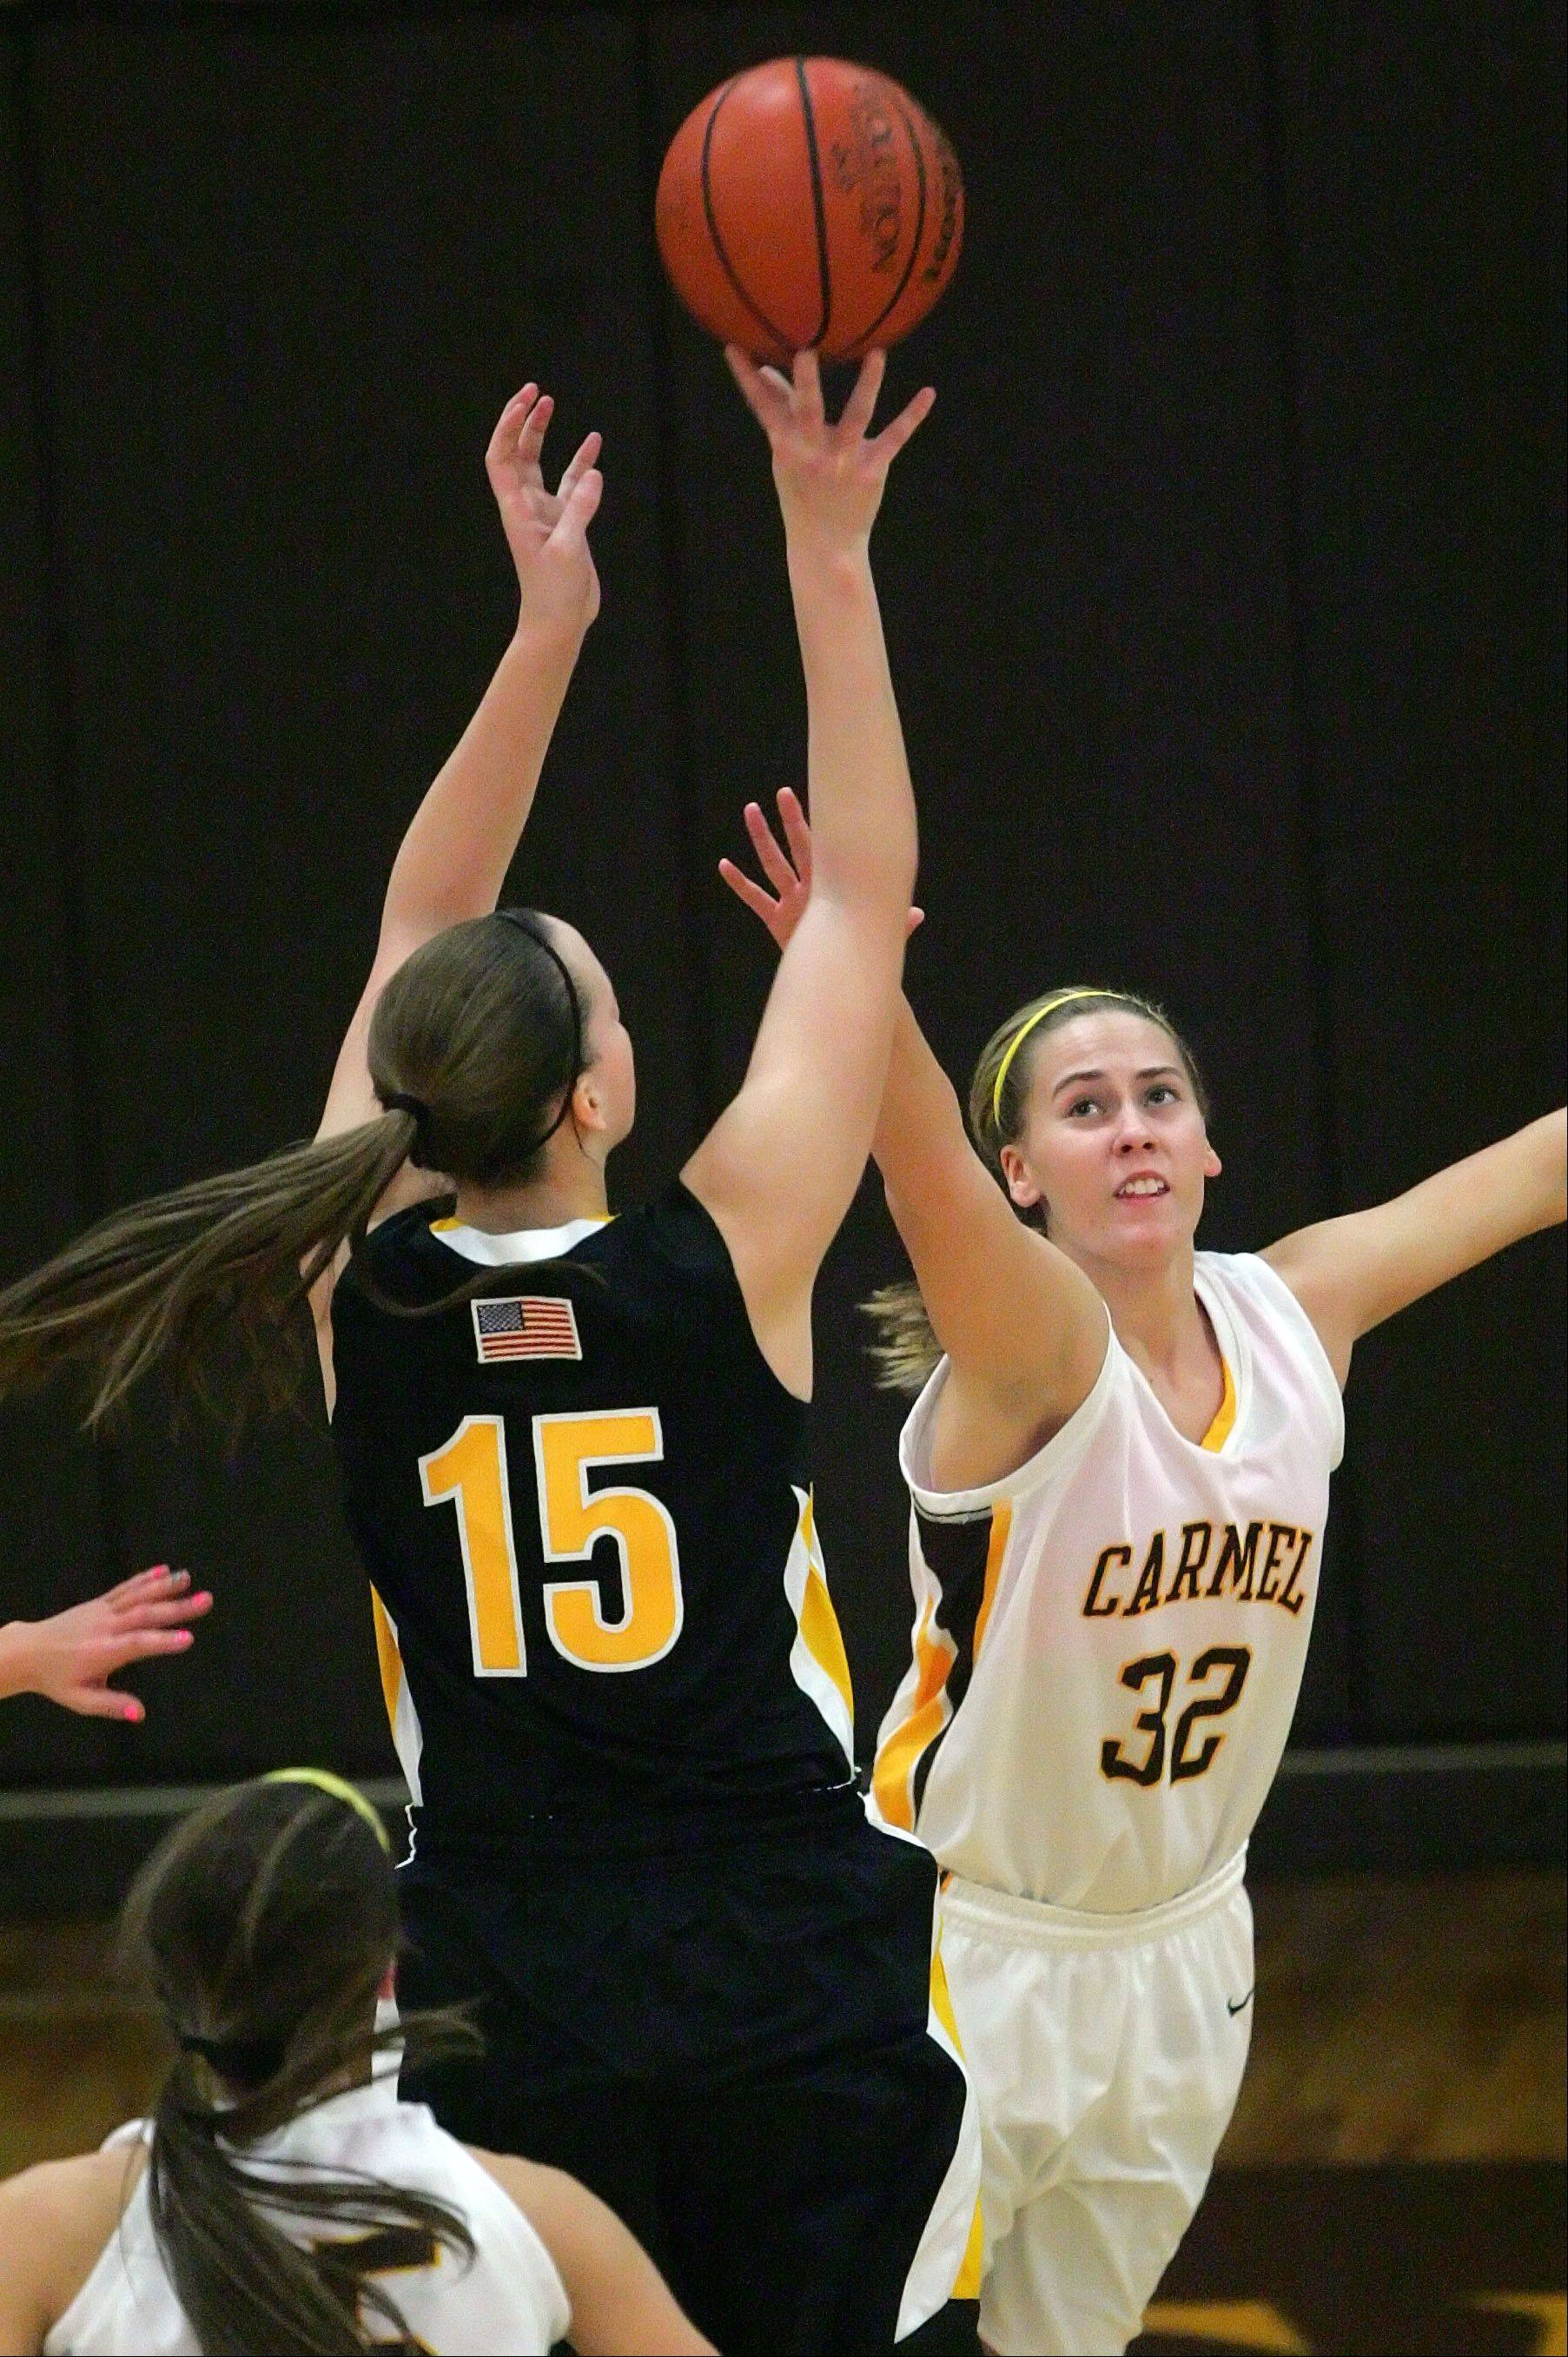 Carmel Catholic's Emma Rappe, right, defends against Marian Catholic's Megan Walsh.